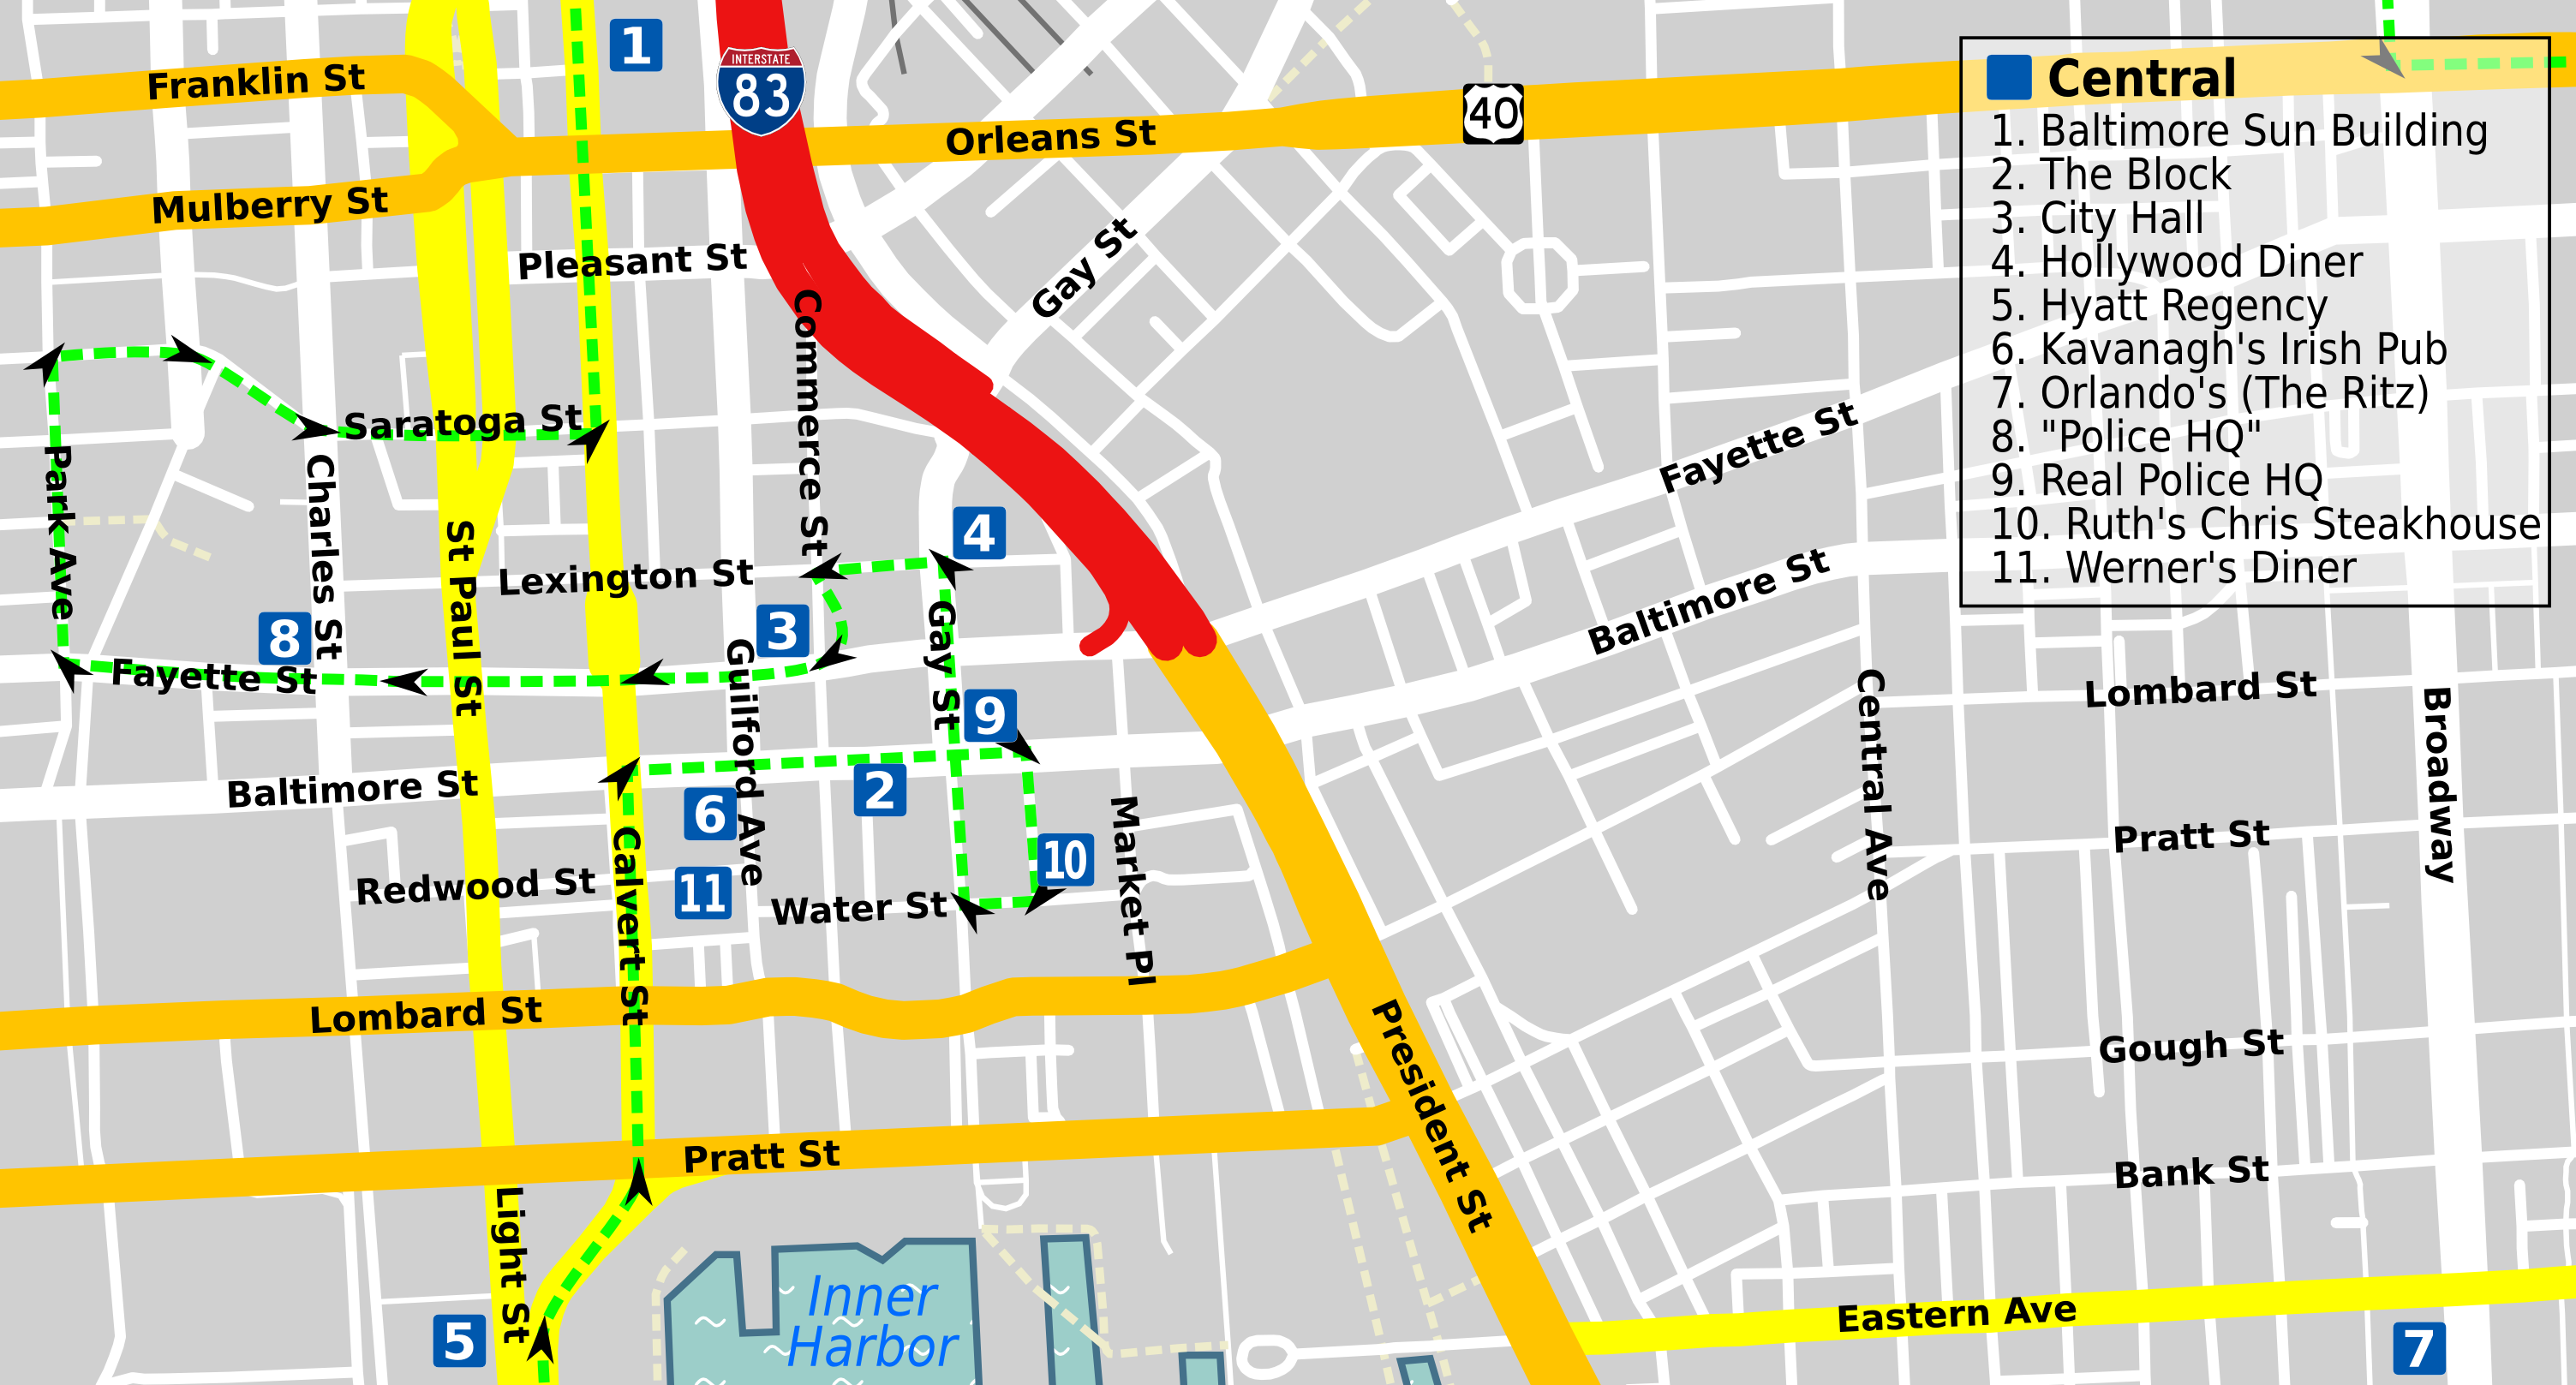 File:Central Wire Tour map.png - Wikimedia Commons